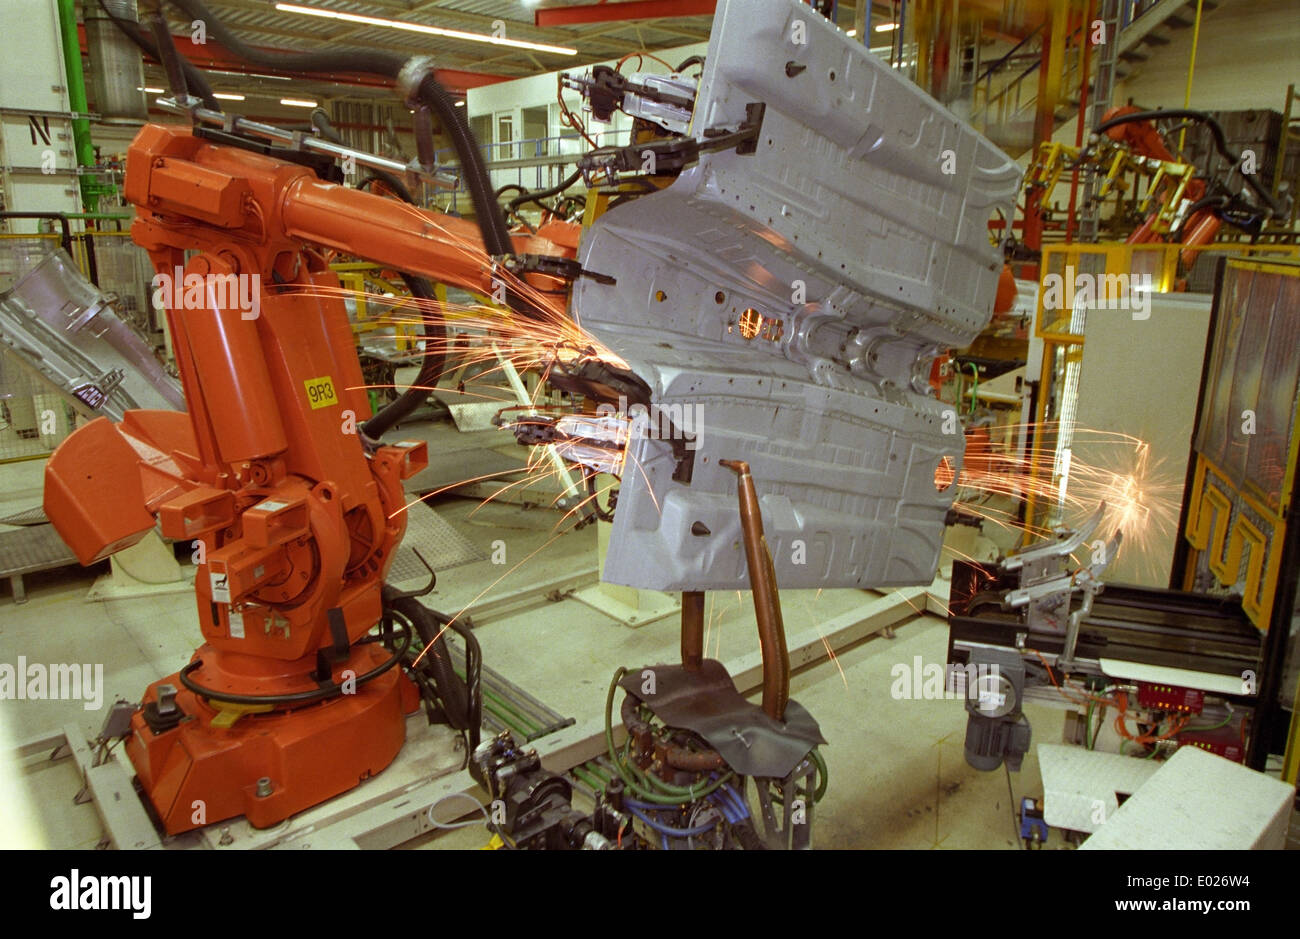 Robot arm welding photos robot arm welding images alamy - Soudure al arc ...